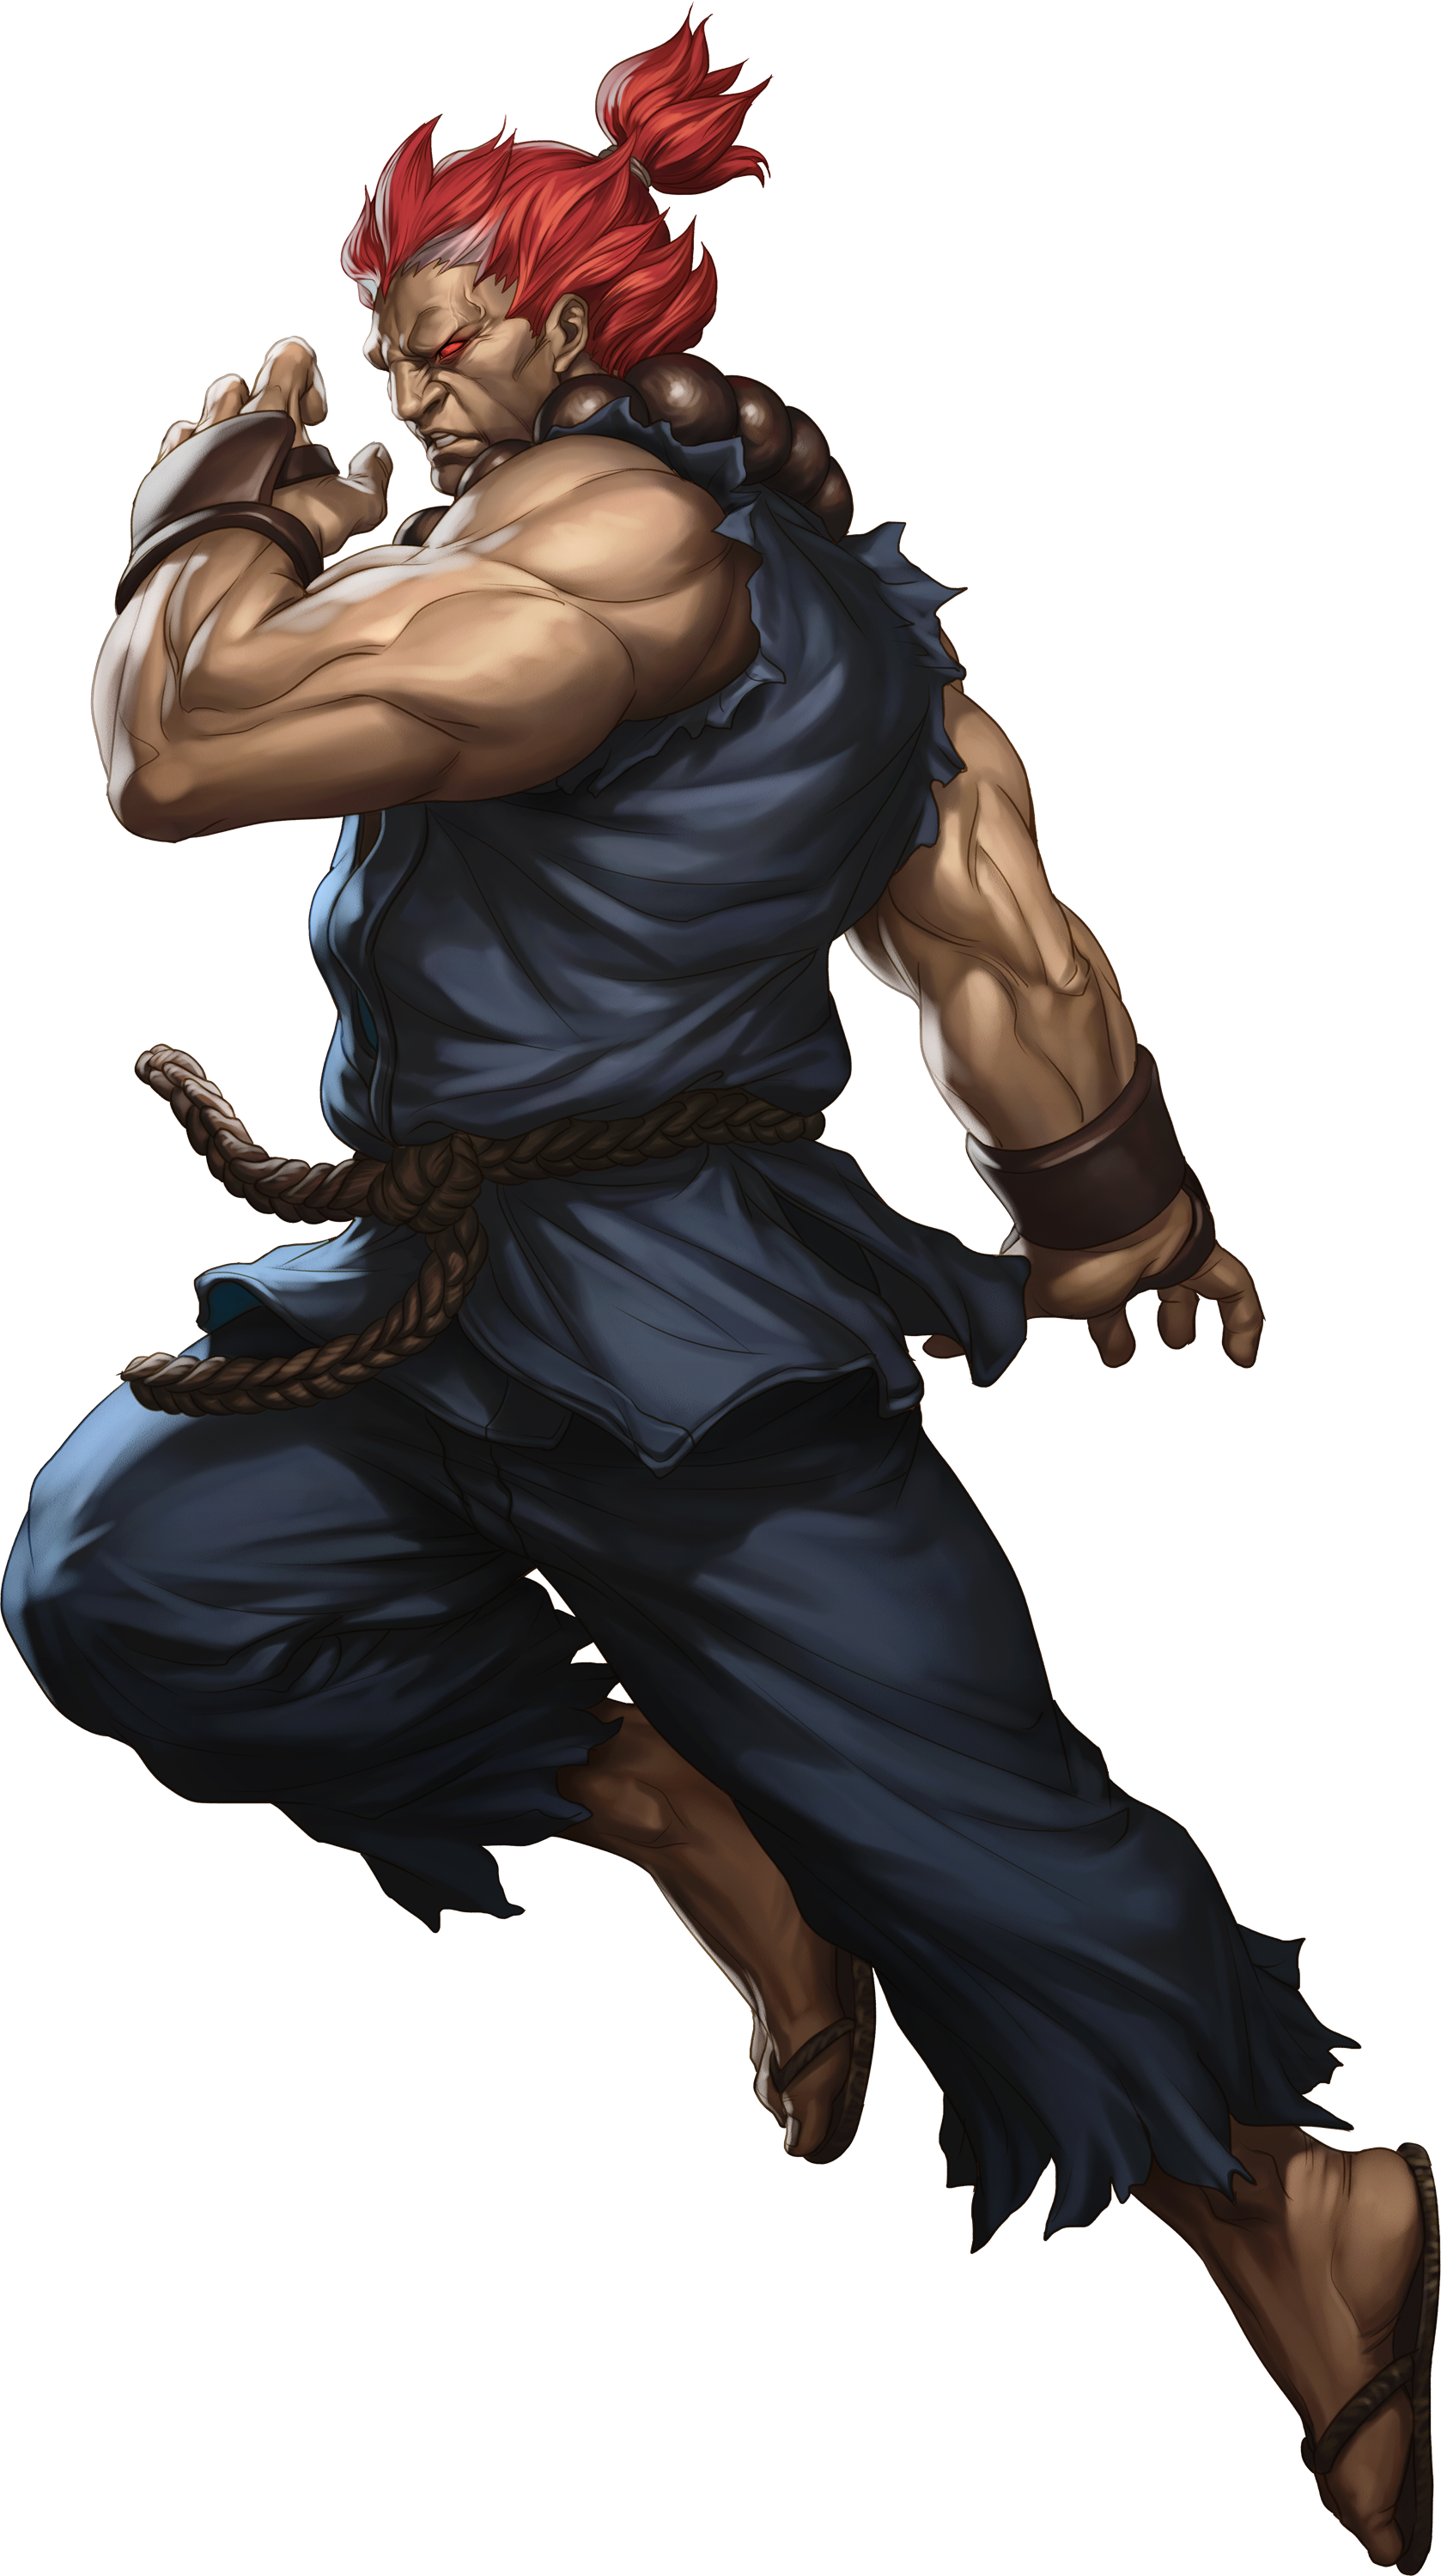 Fighter 3Rd Character Fictional Iv Street Supernatural PNG Image